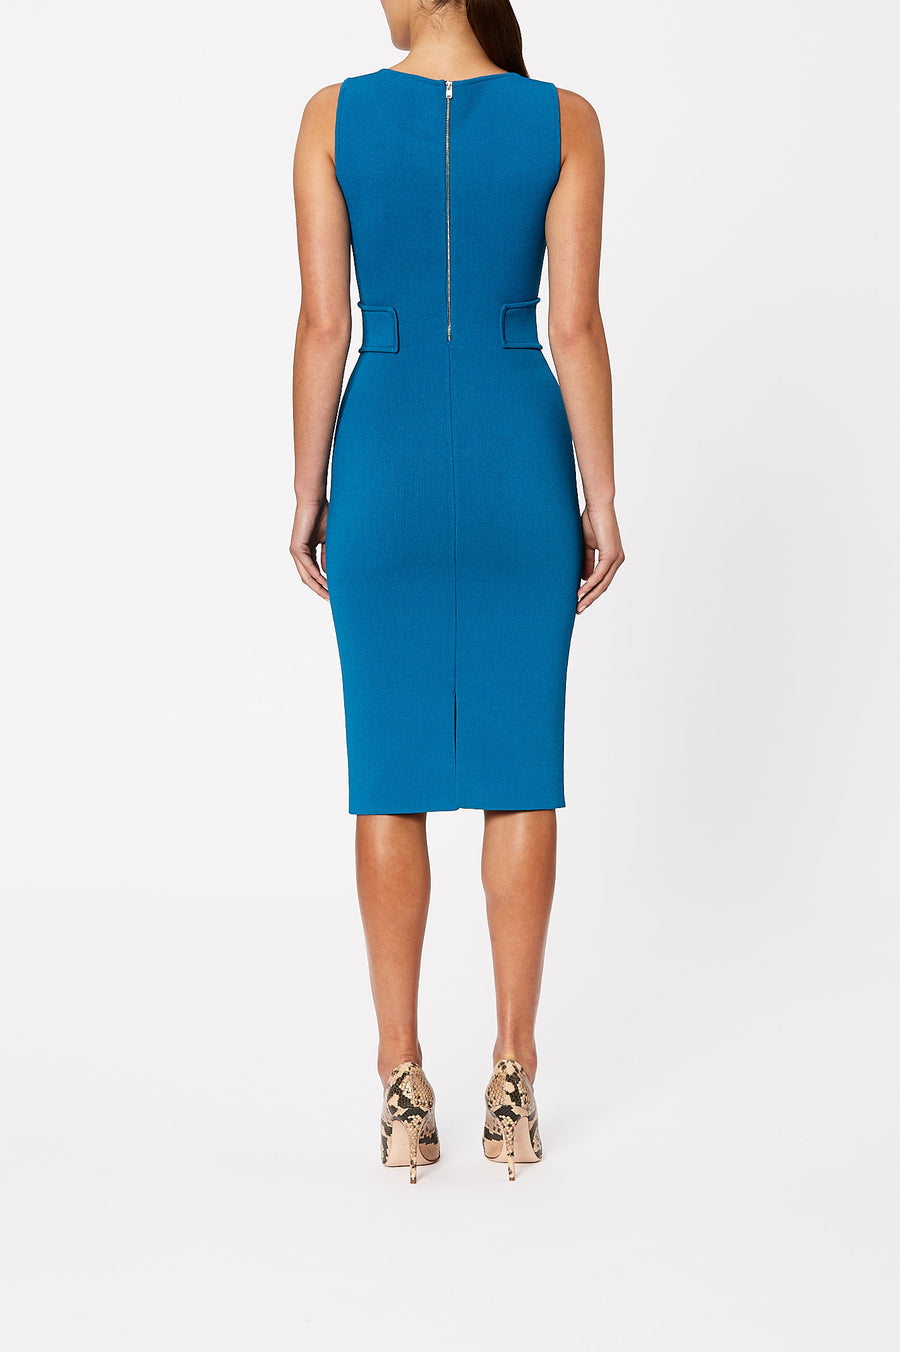 Update your evening style with our Crepe Knit Panel Waist Dress